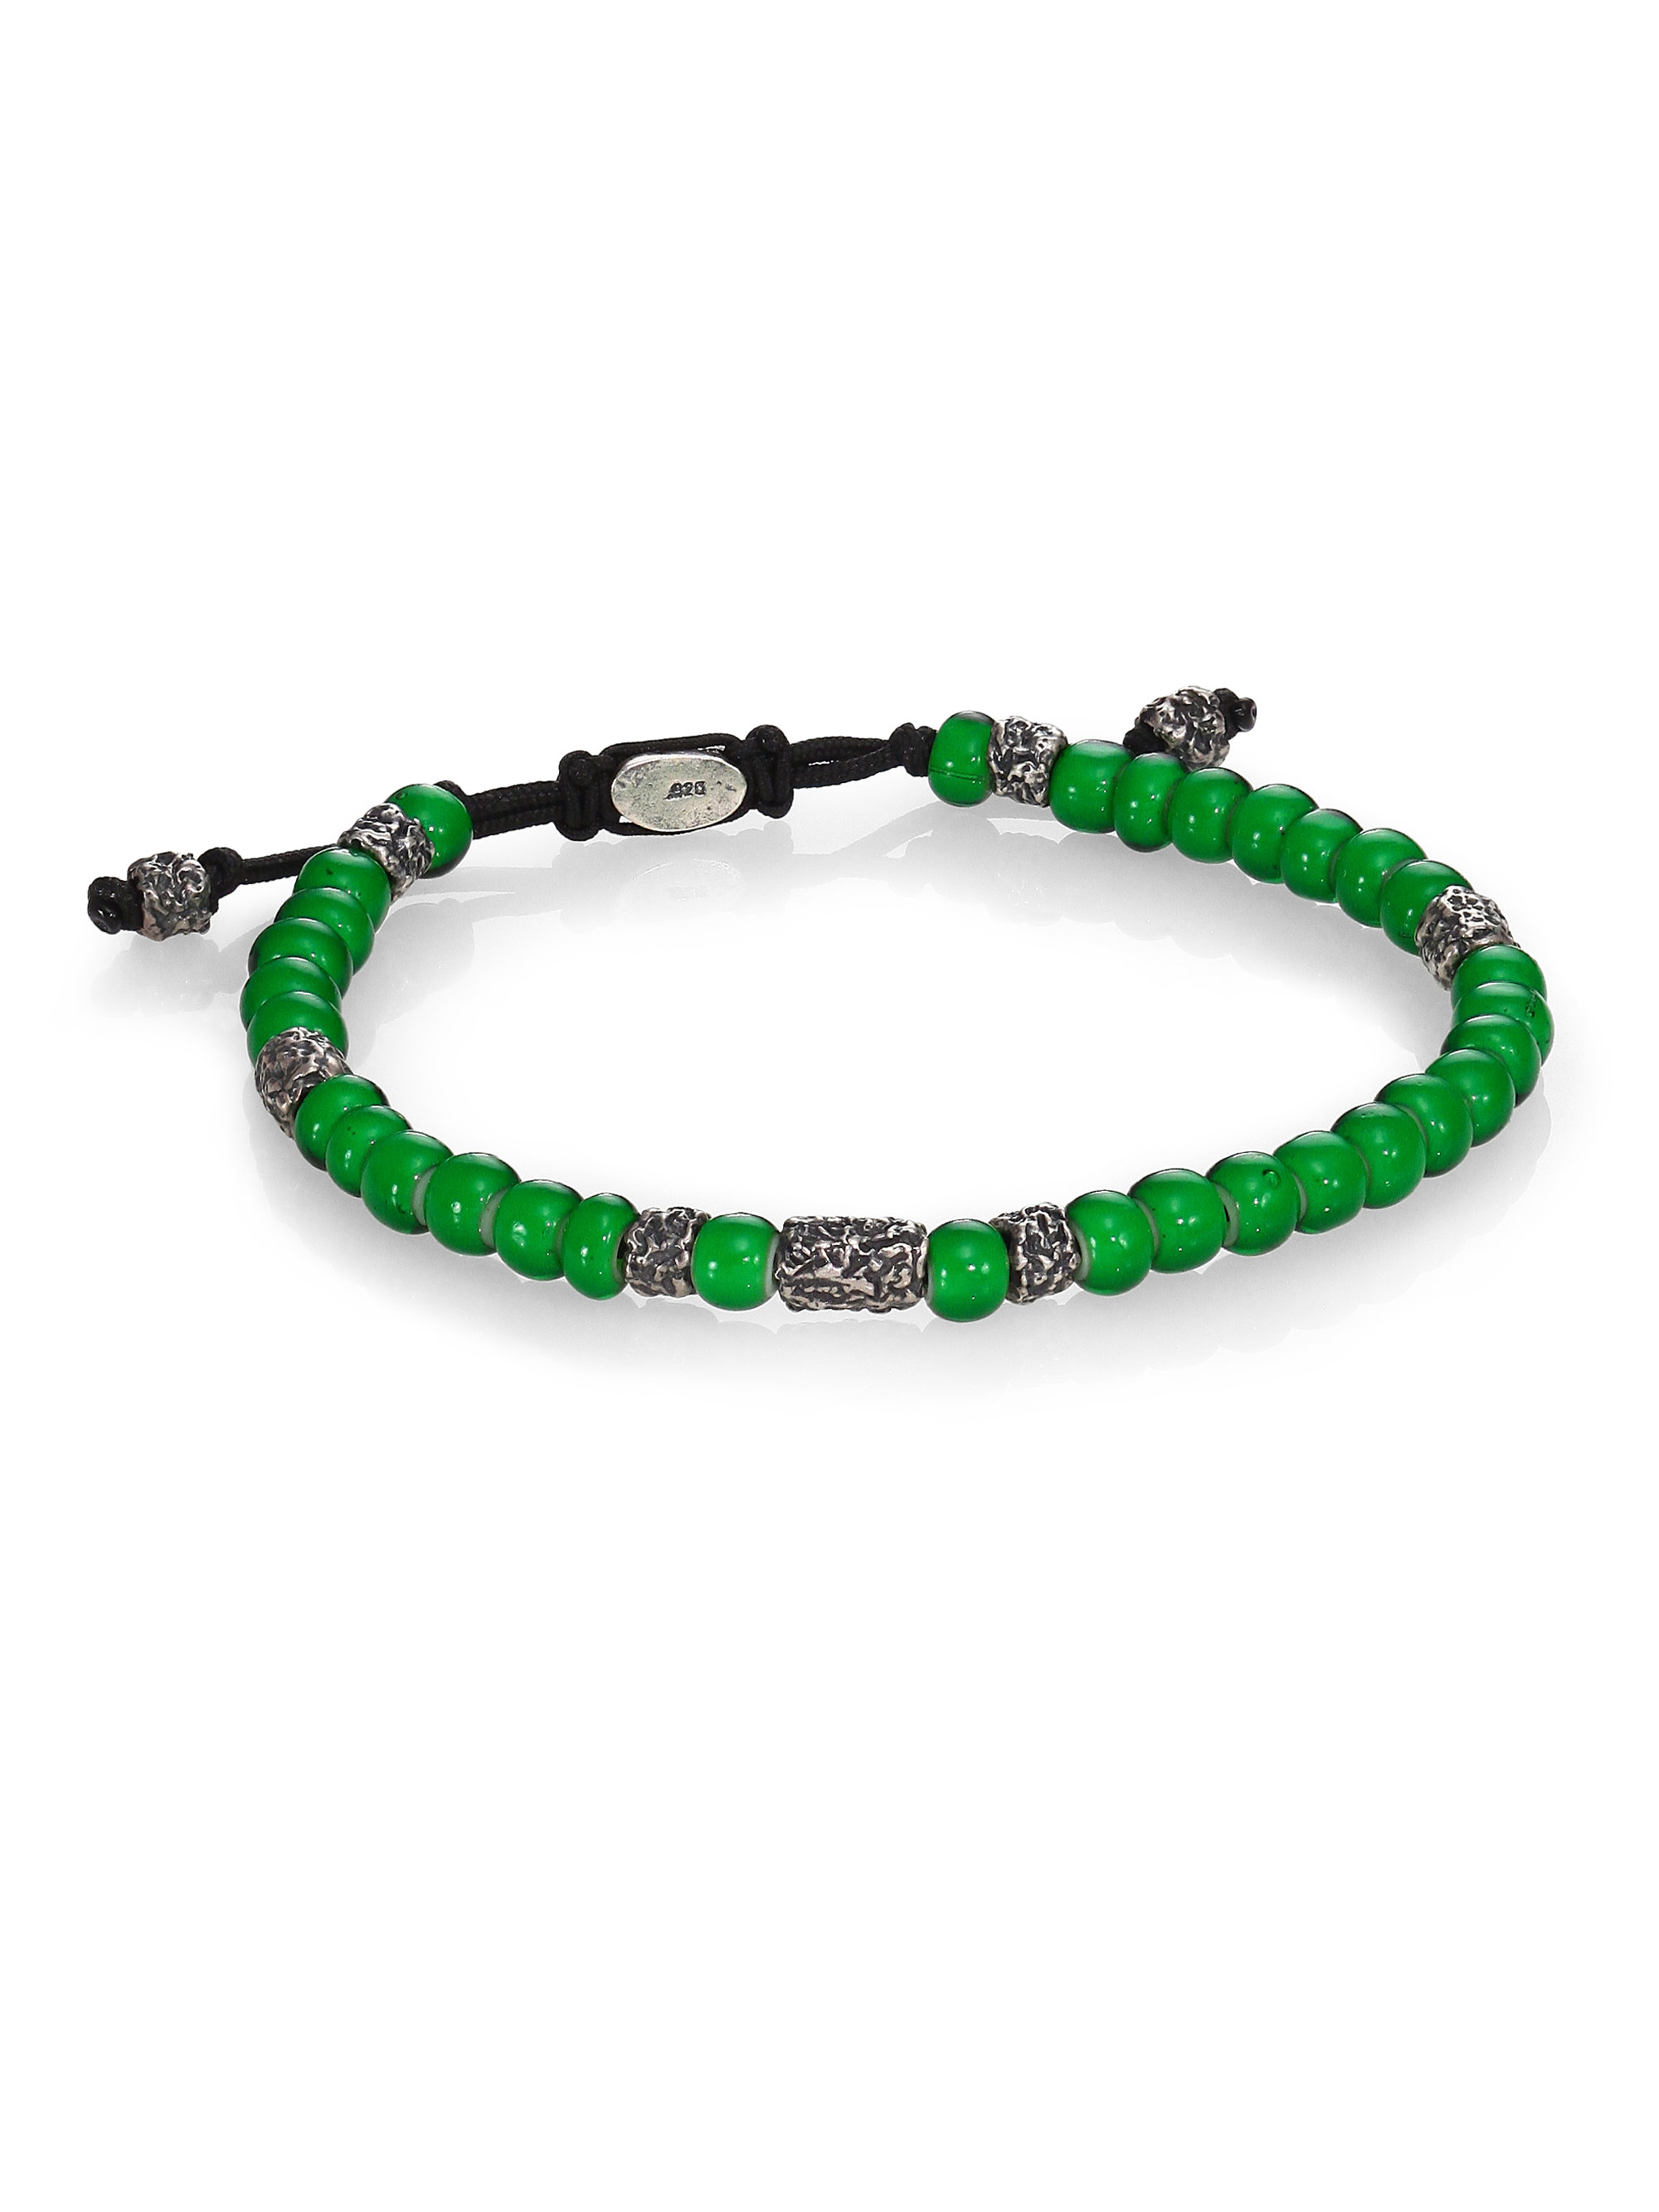 M. Cohen African Beads Stacked Bracelet in Green | Lyst